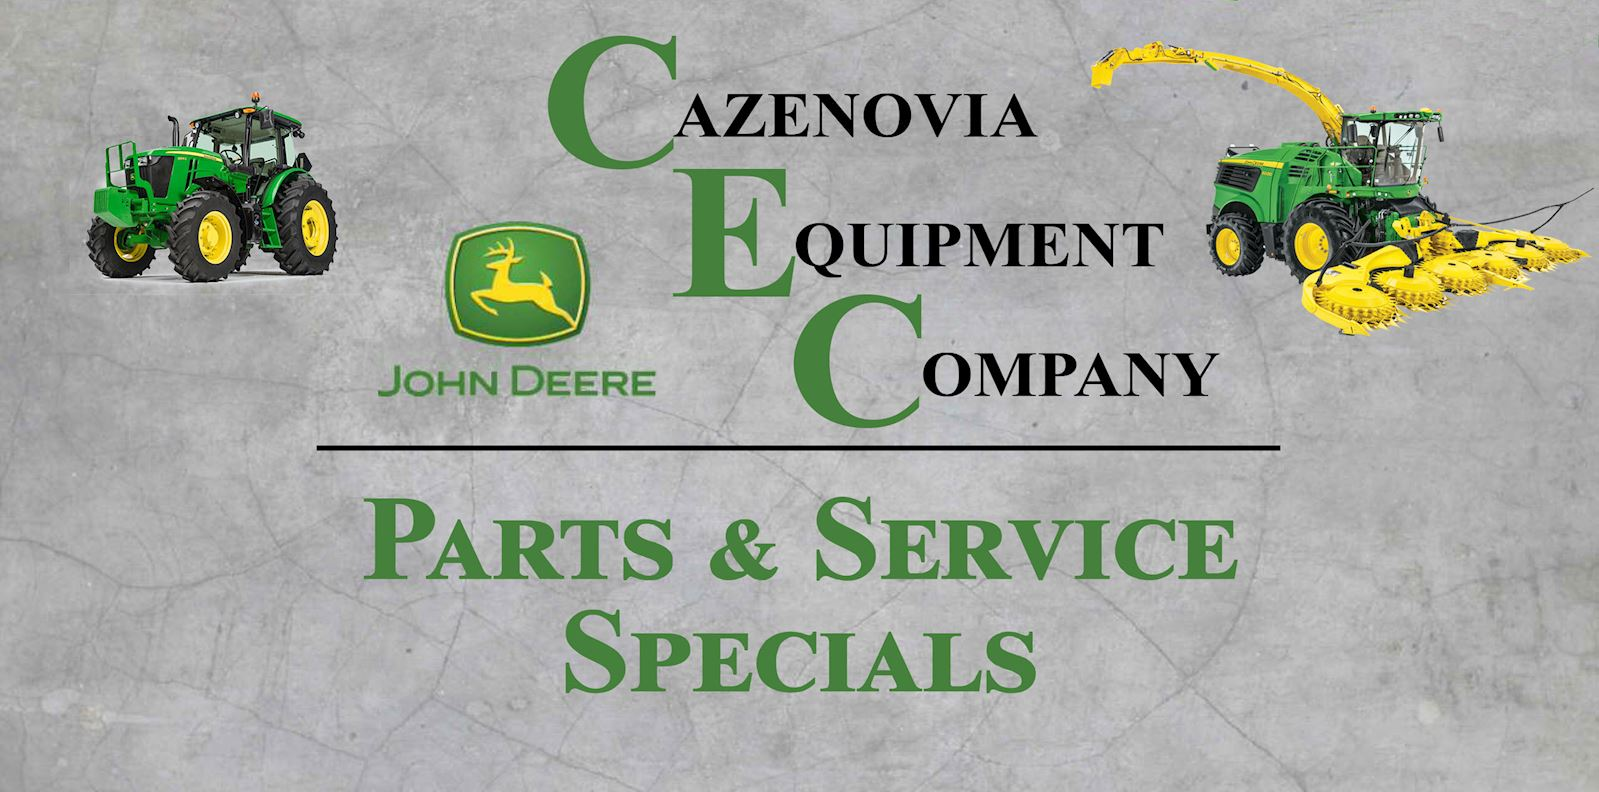 Cazenovia Equipment Homepage